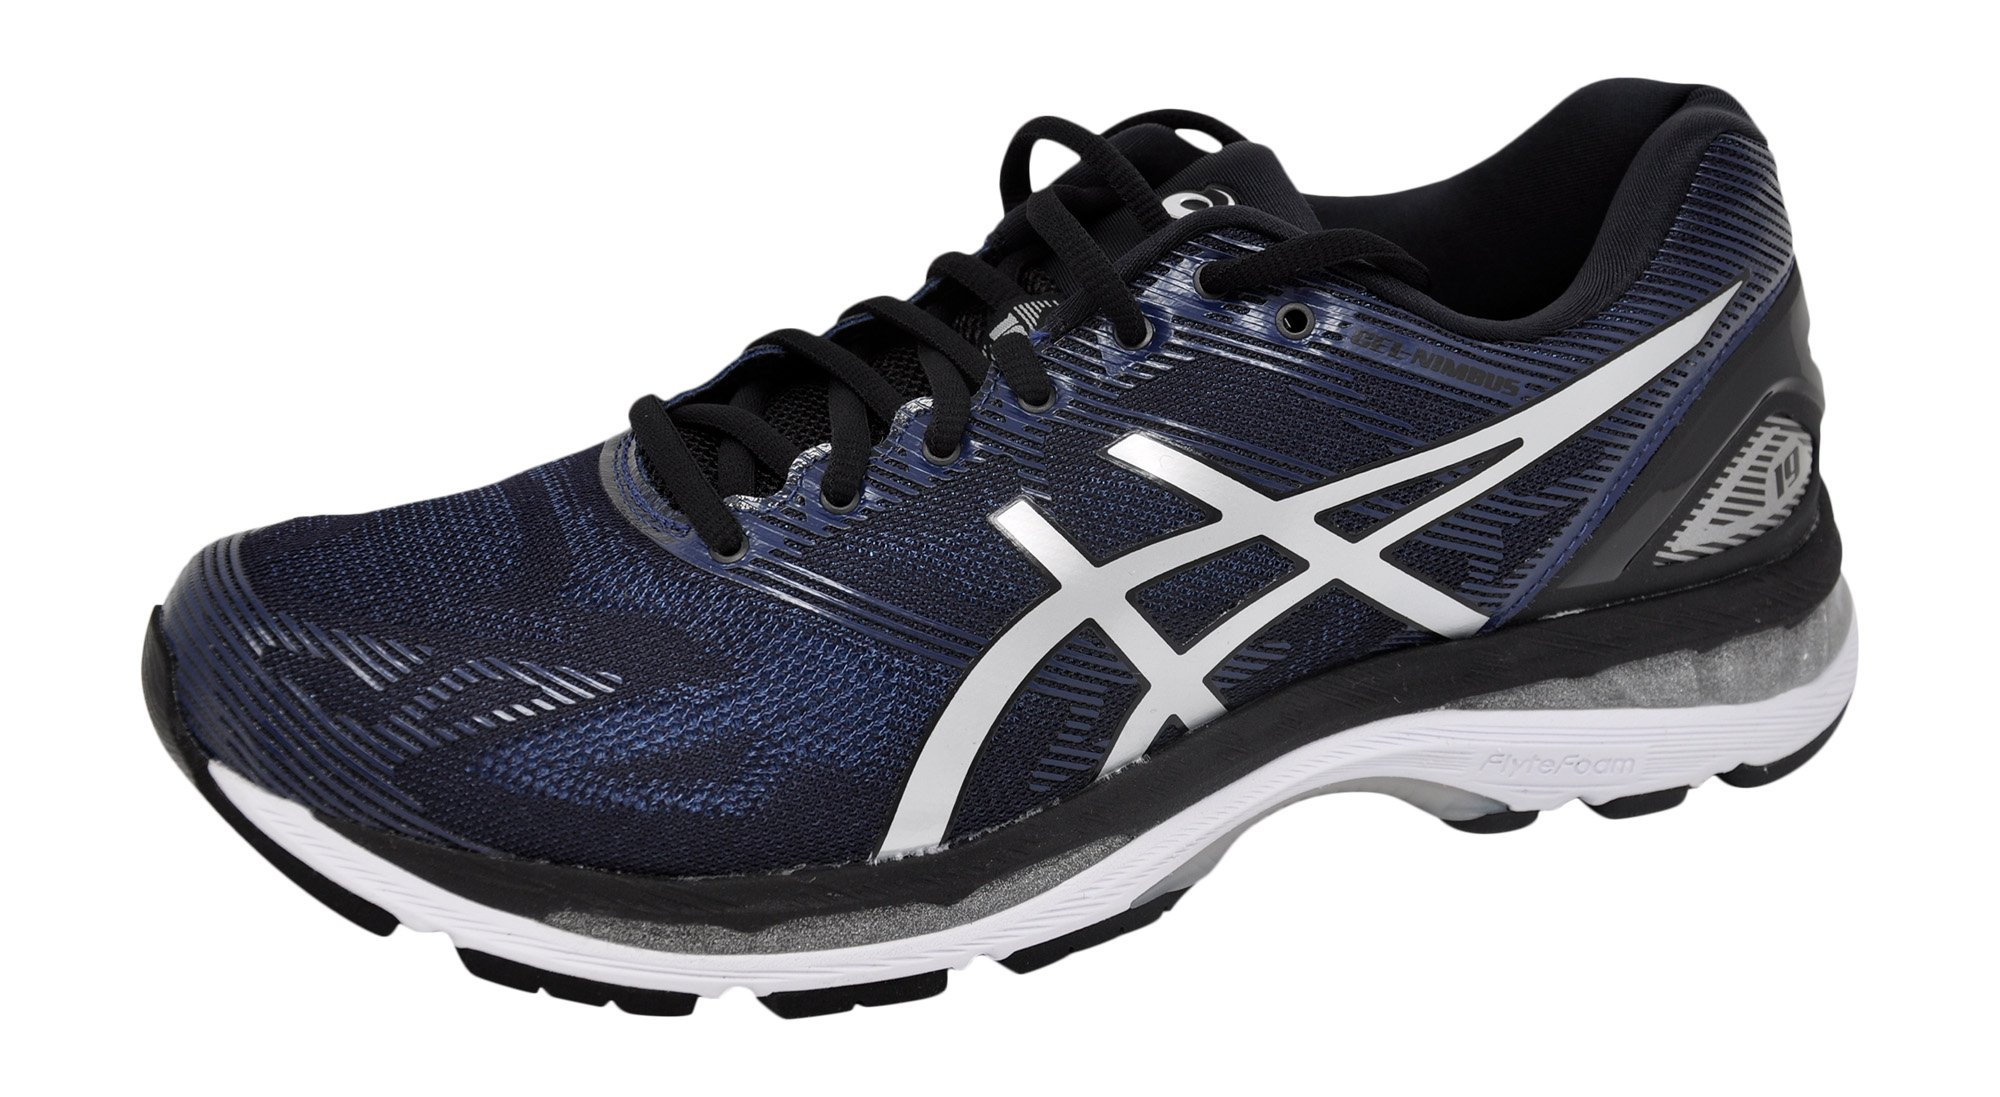 ASICS Men's Gel-Nimbus 19 Running Shoe Peacoat/Silver/Black, 9 D(M) US by ASICS